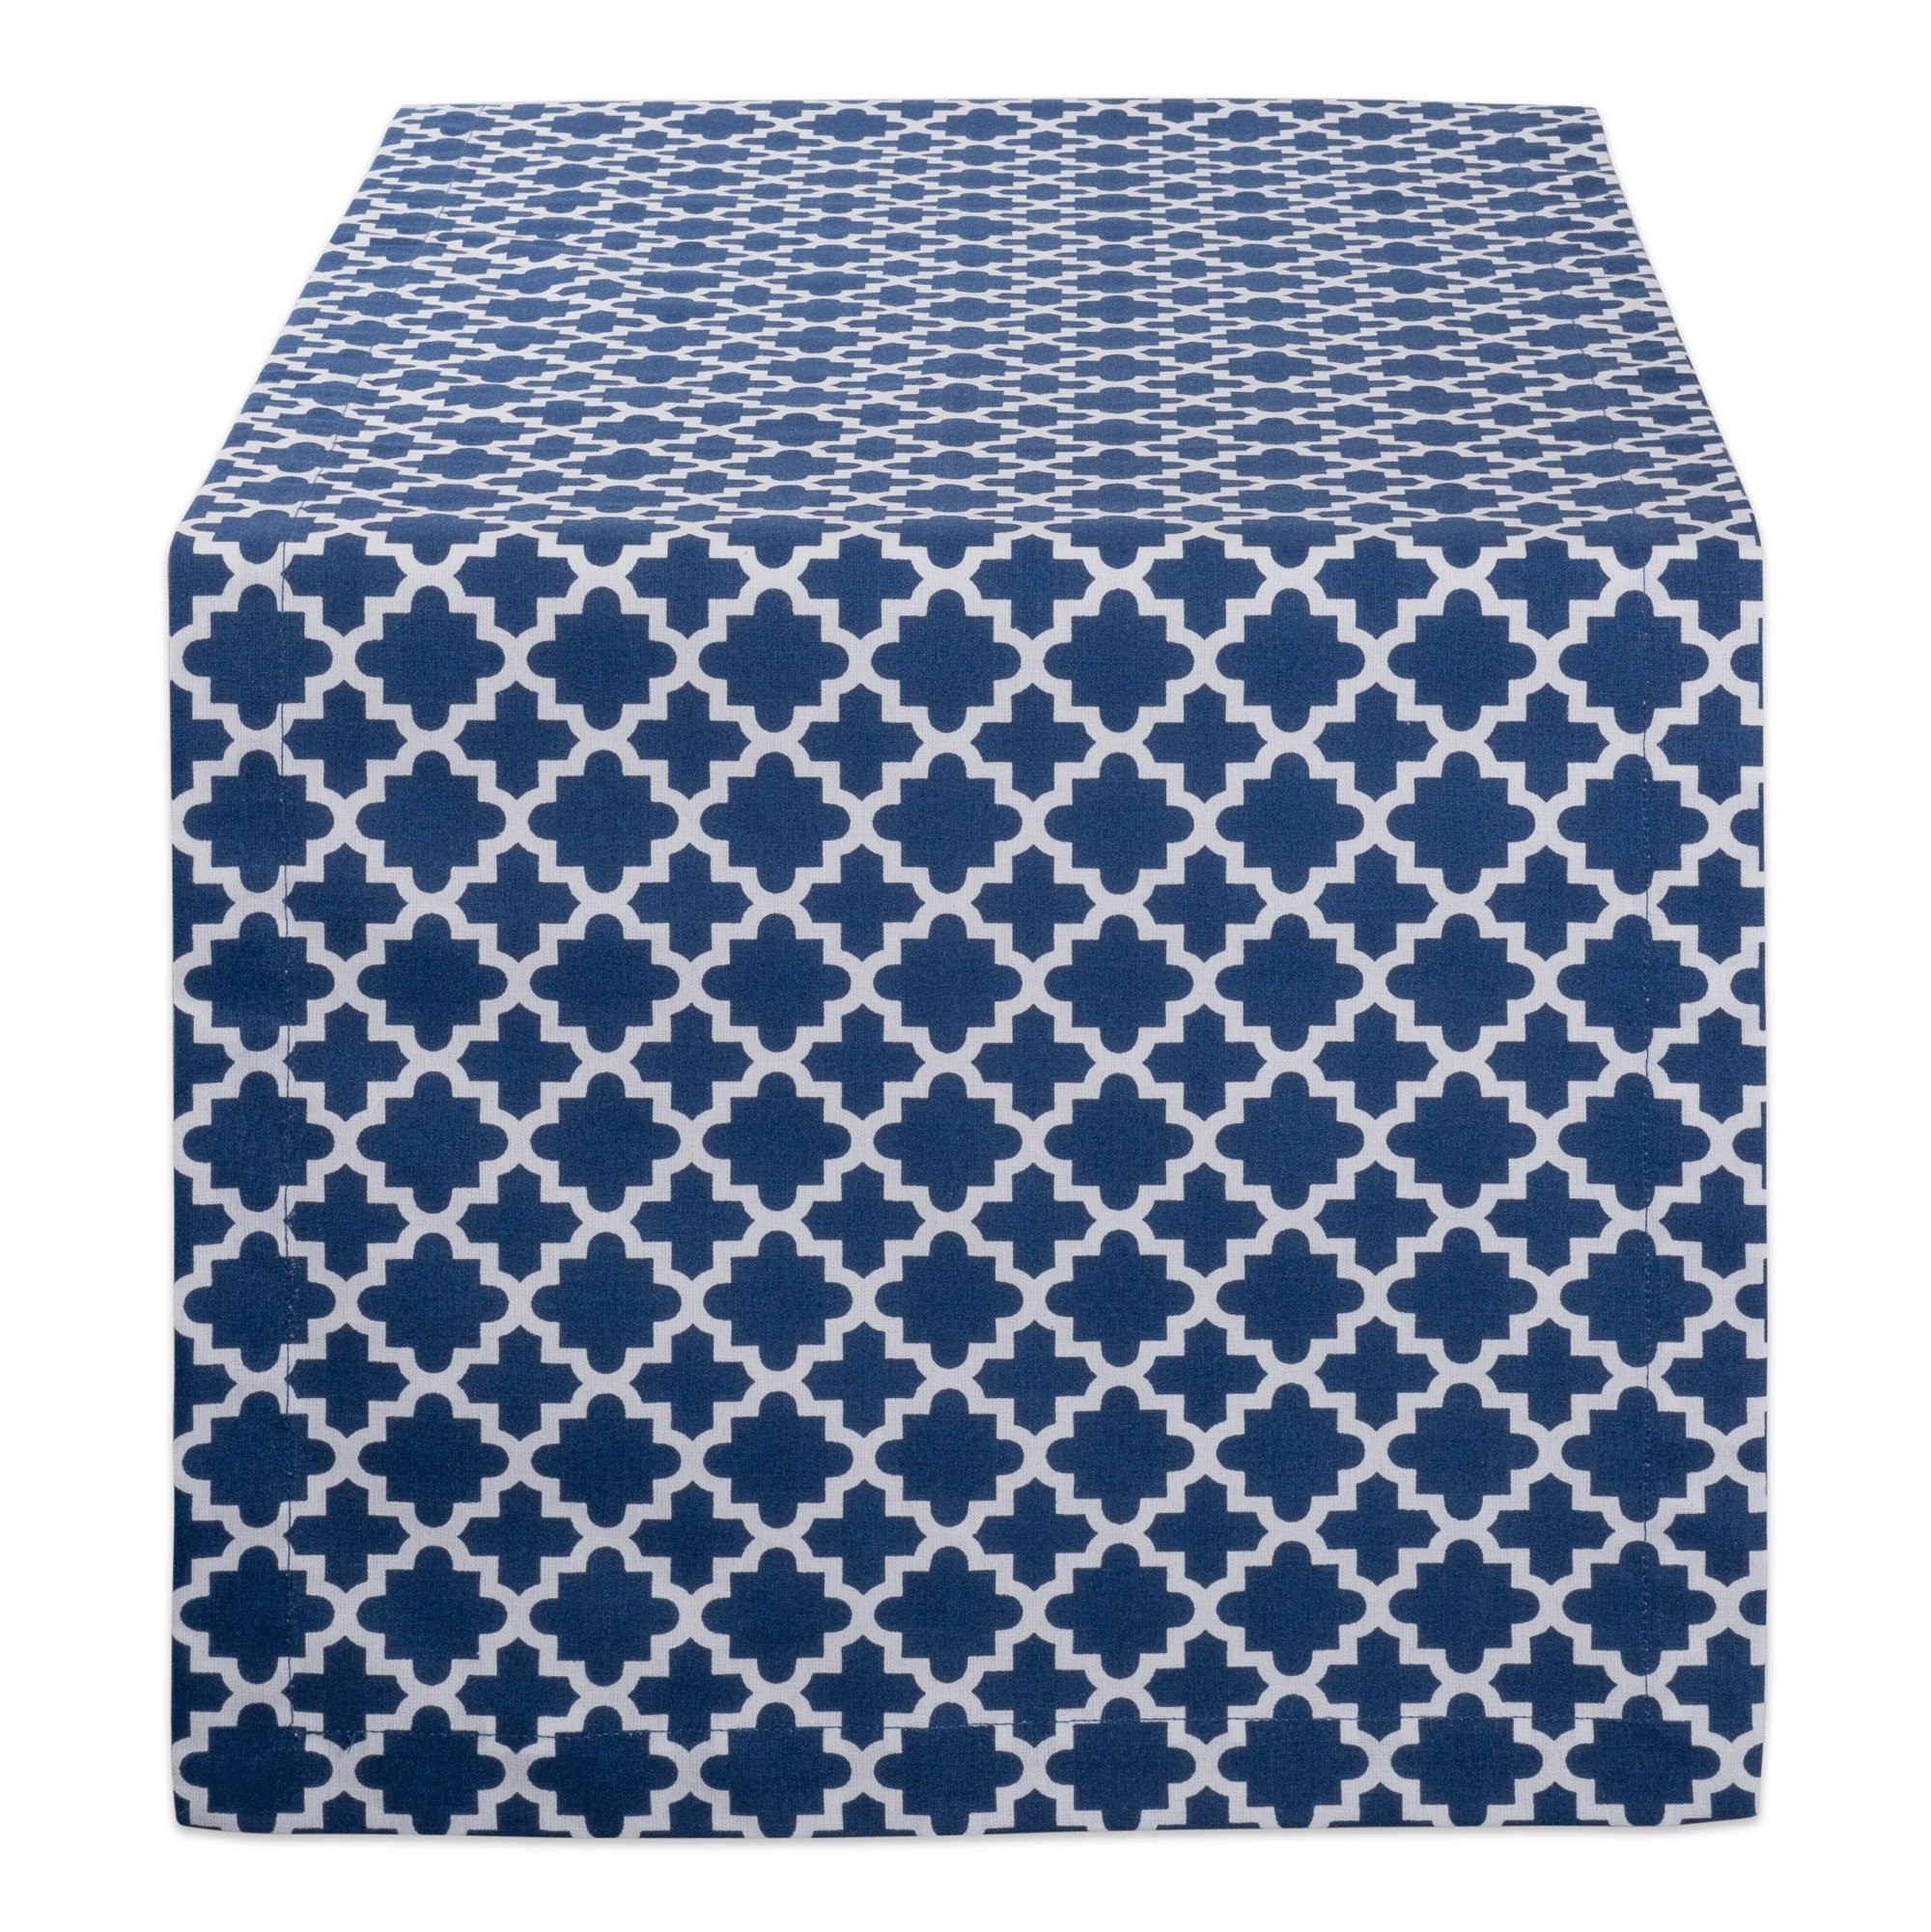 DII Lattice Cotton Table Runner for Dining Room, Foyer Table, Summer Parties and Everyday Use - 14x108'', Nautical Blue and White by DII (Image #2)